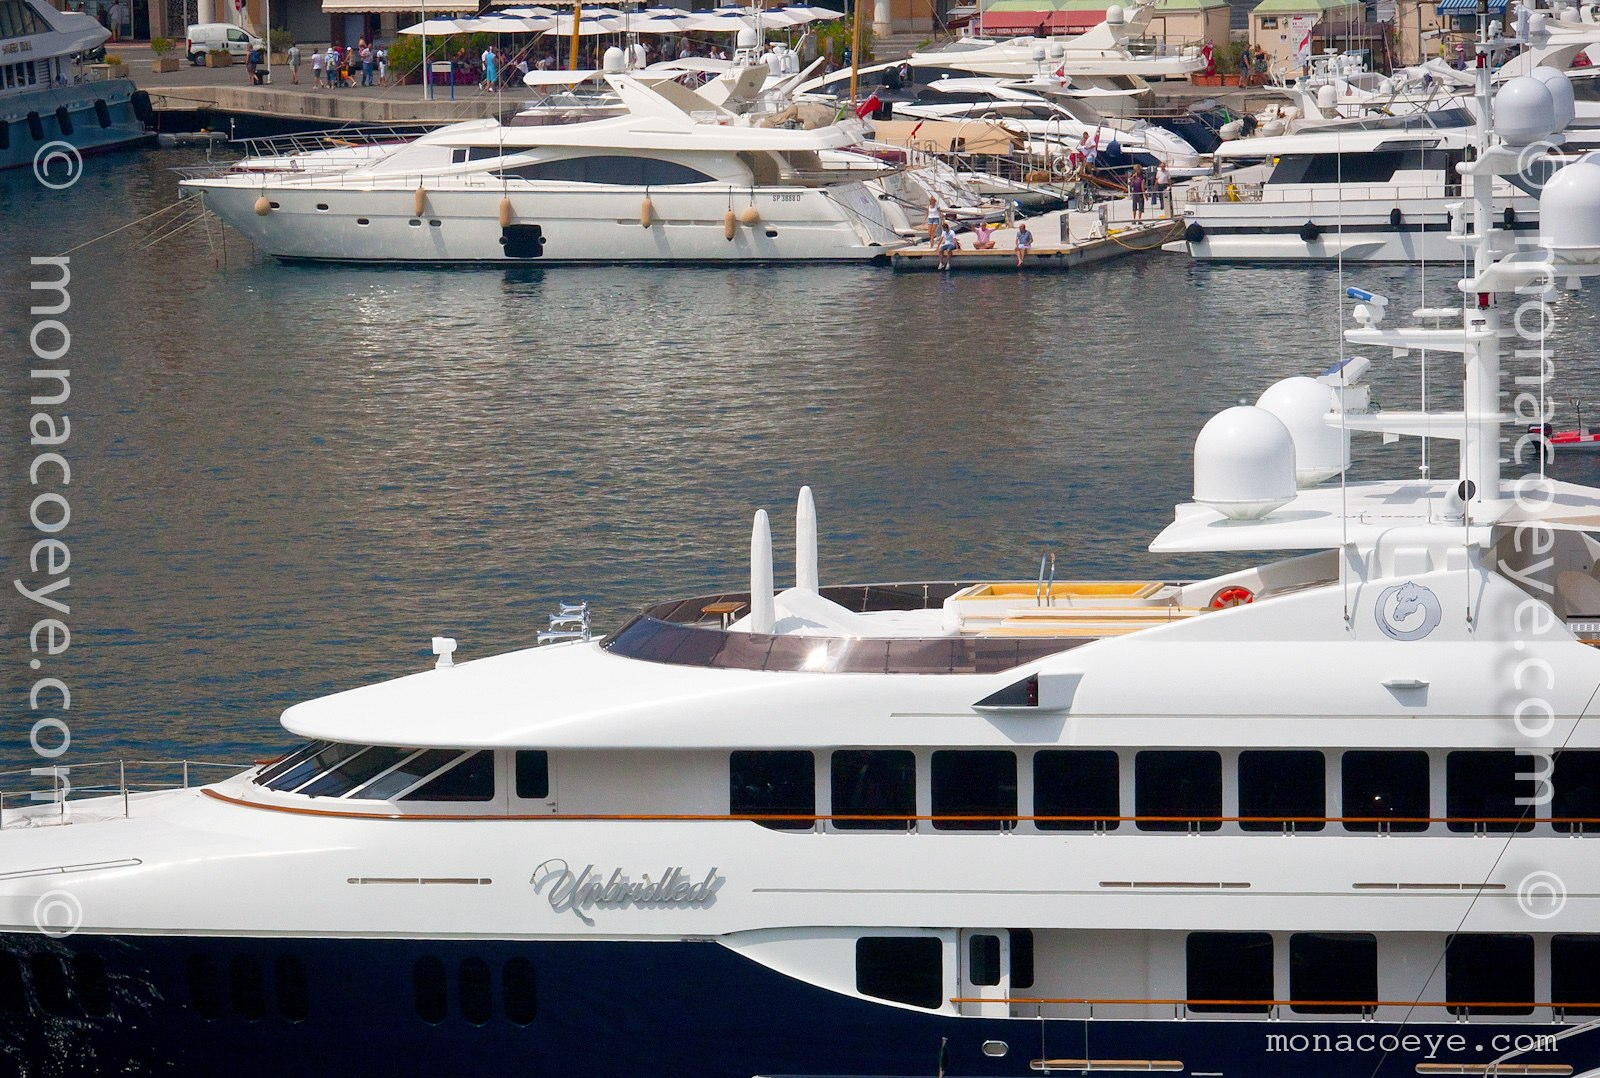 Unbridled, 2008 design from Trinity Yachts and Patrick Knowles. Seen here in Monaco.